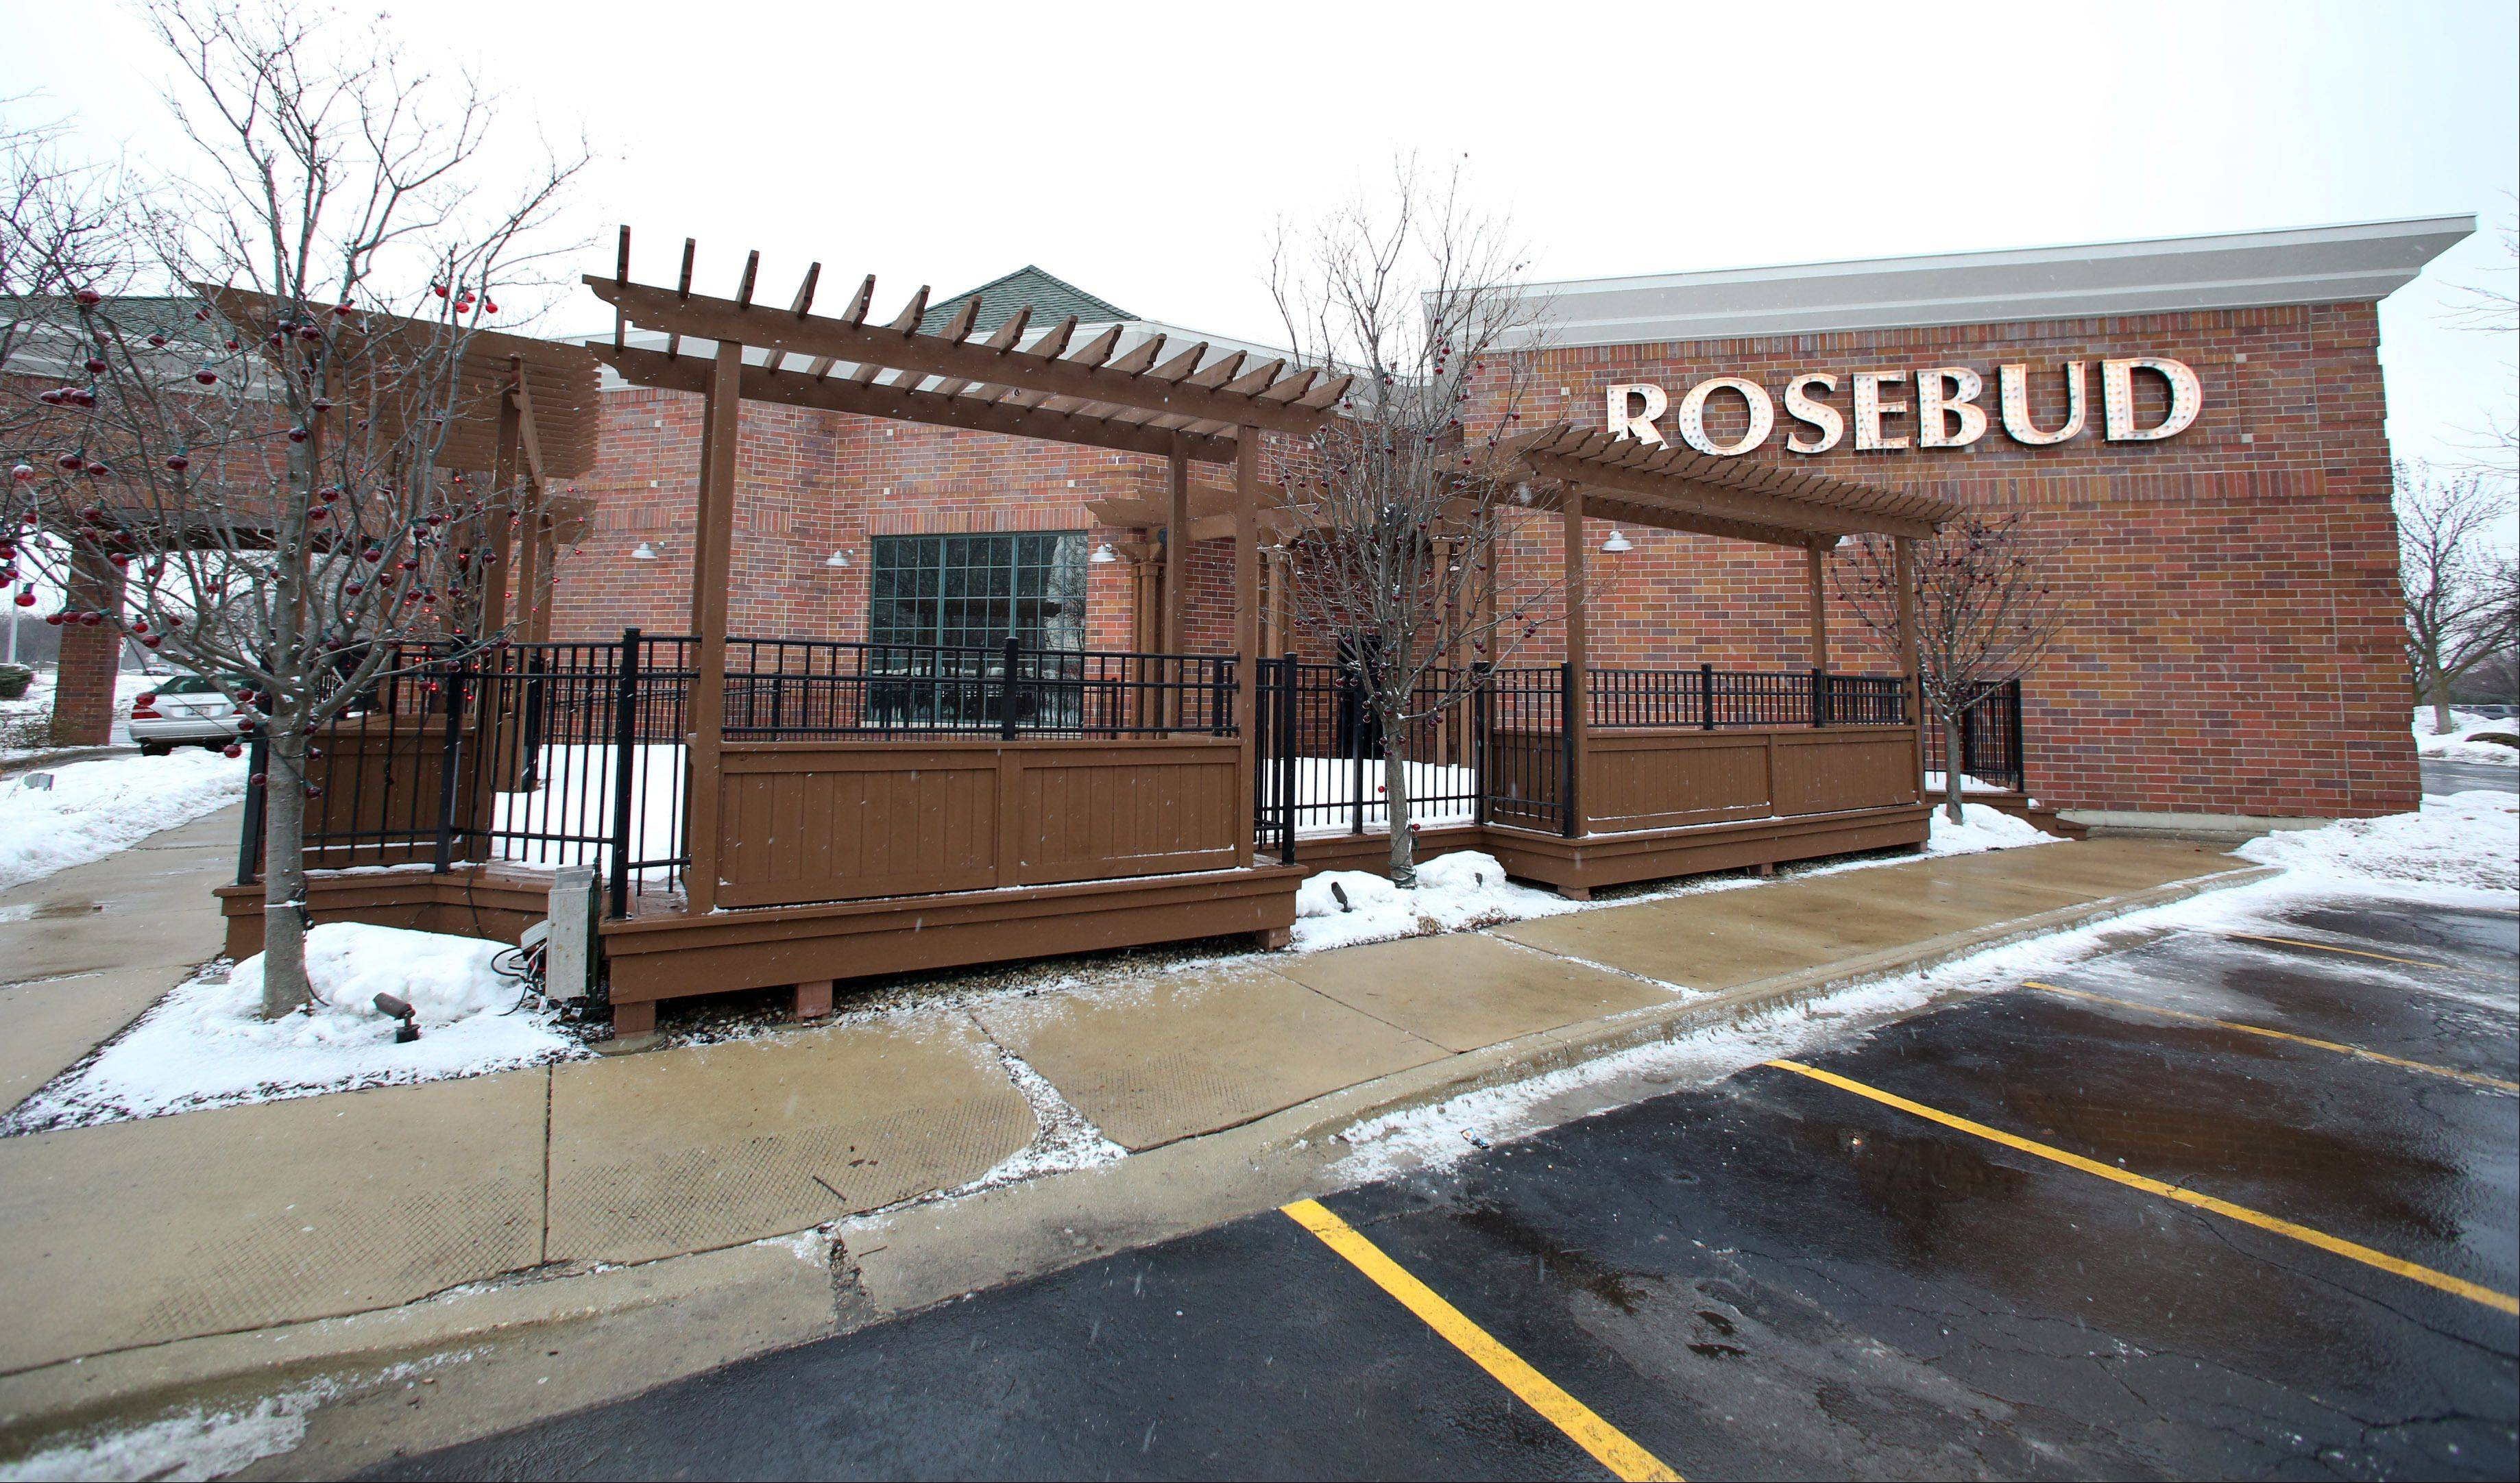 Rosebud Old World Italian restaurant in Schaumburg has been sold, but its new owner says the eatery will stay open with the same name and menu for the short term. New owner Andy-John Kalkounos said he hopes to have a new brand in place by April 1, but expects it to continue serving Italian cuisine.